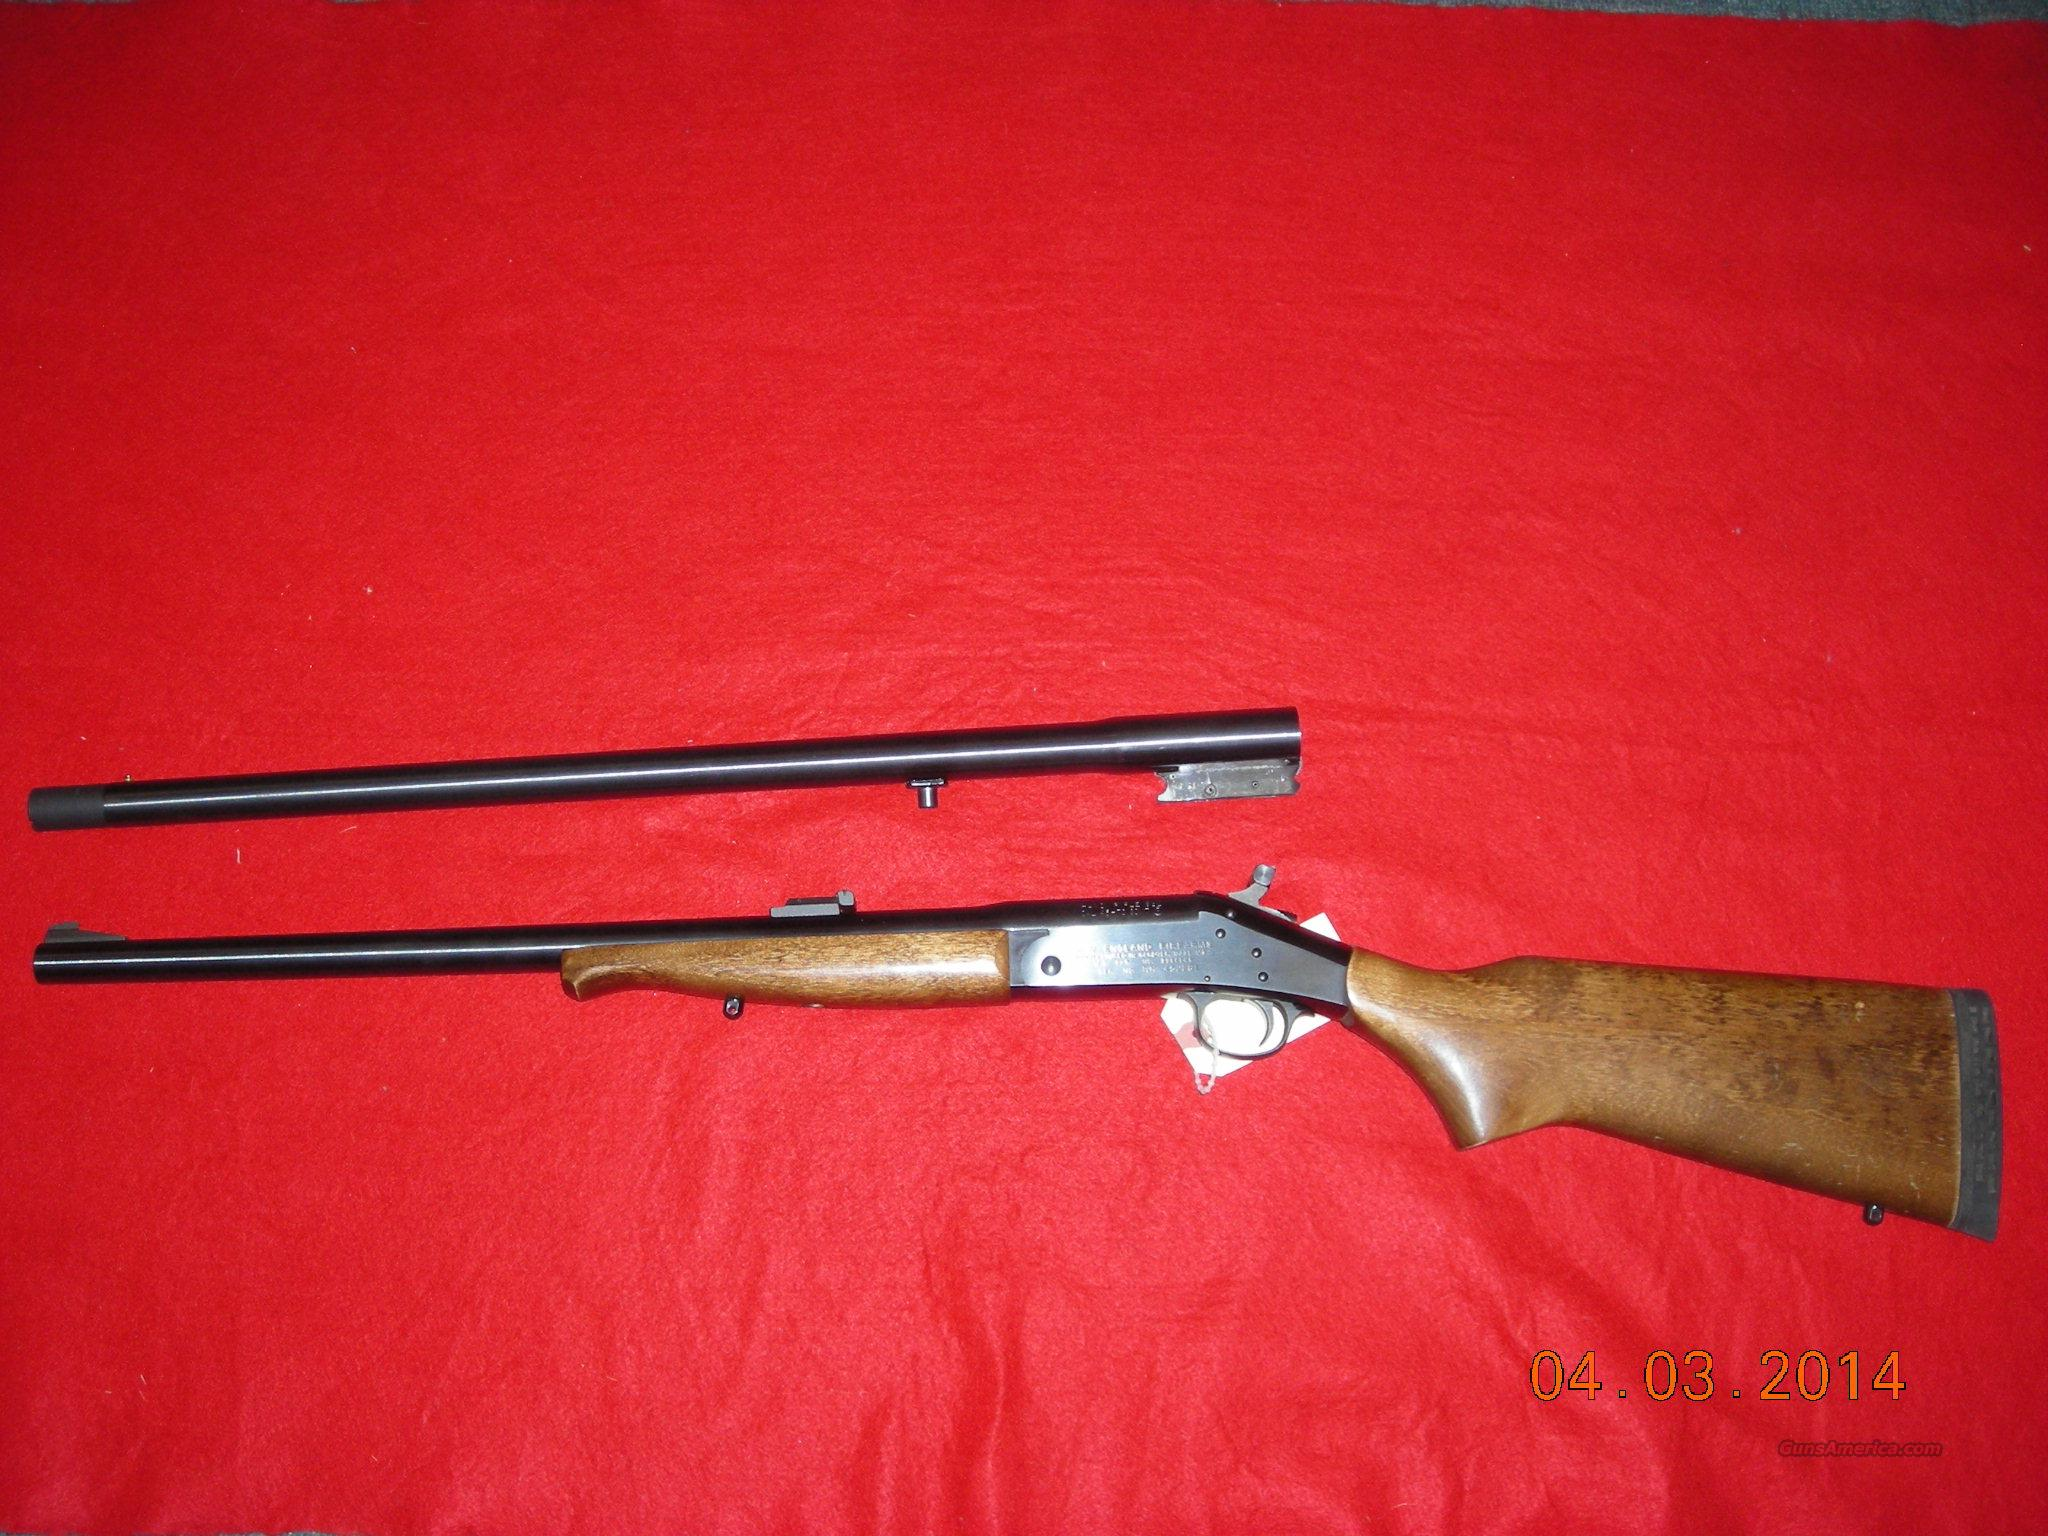 NEW ENGLAND FIREARMS  Guns > Rifles > New England Firearms (NEF) Rifles